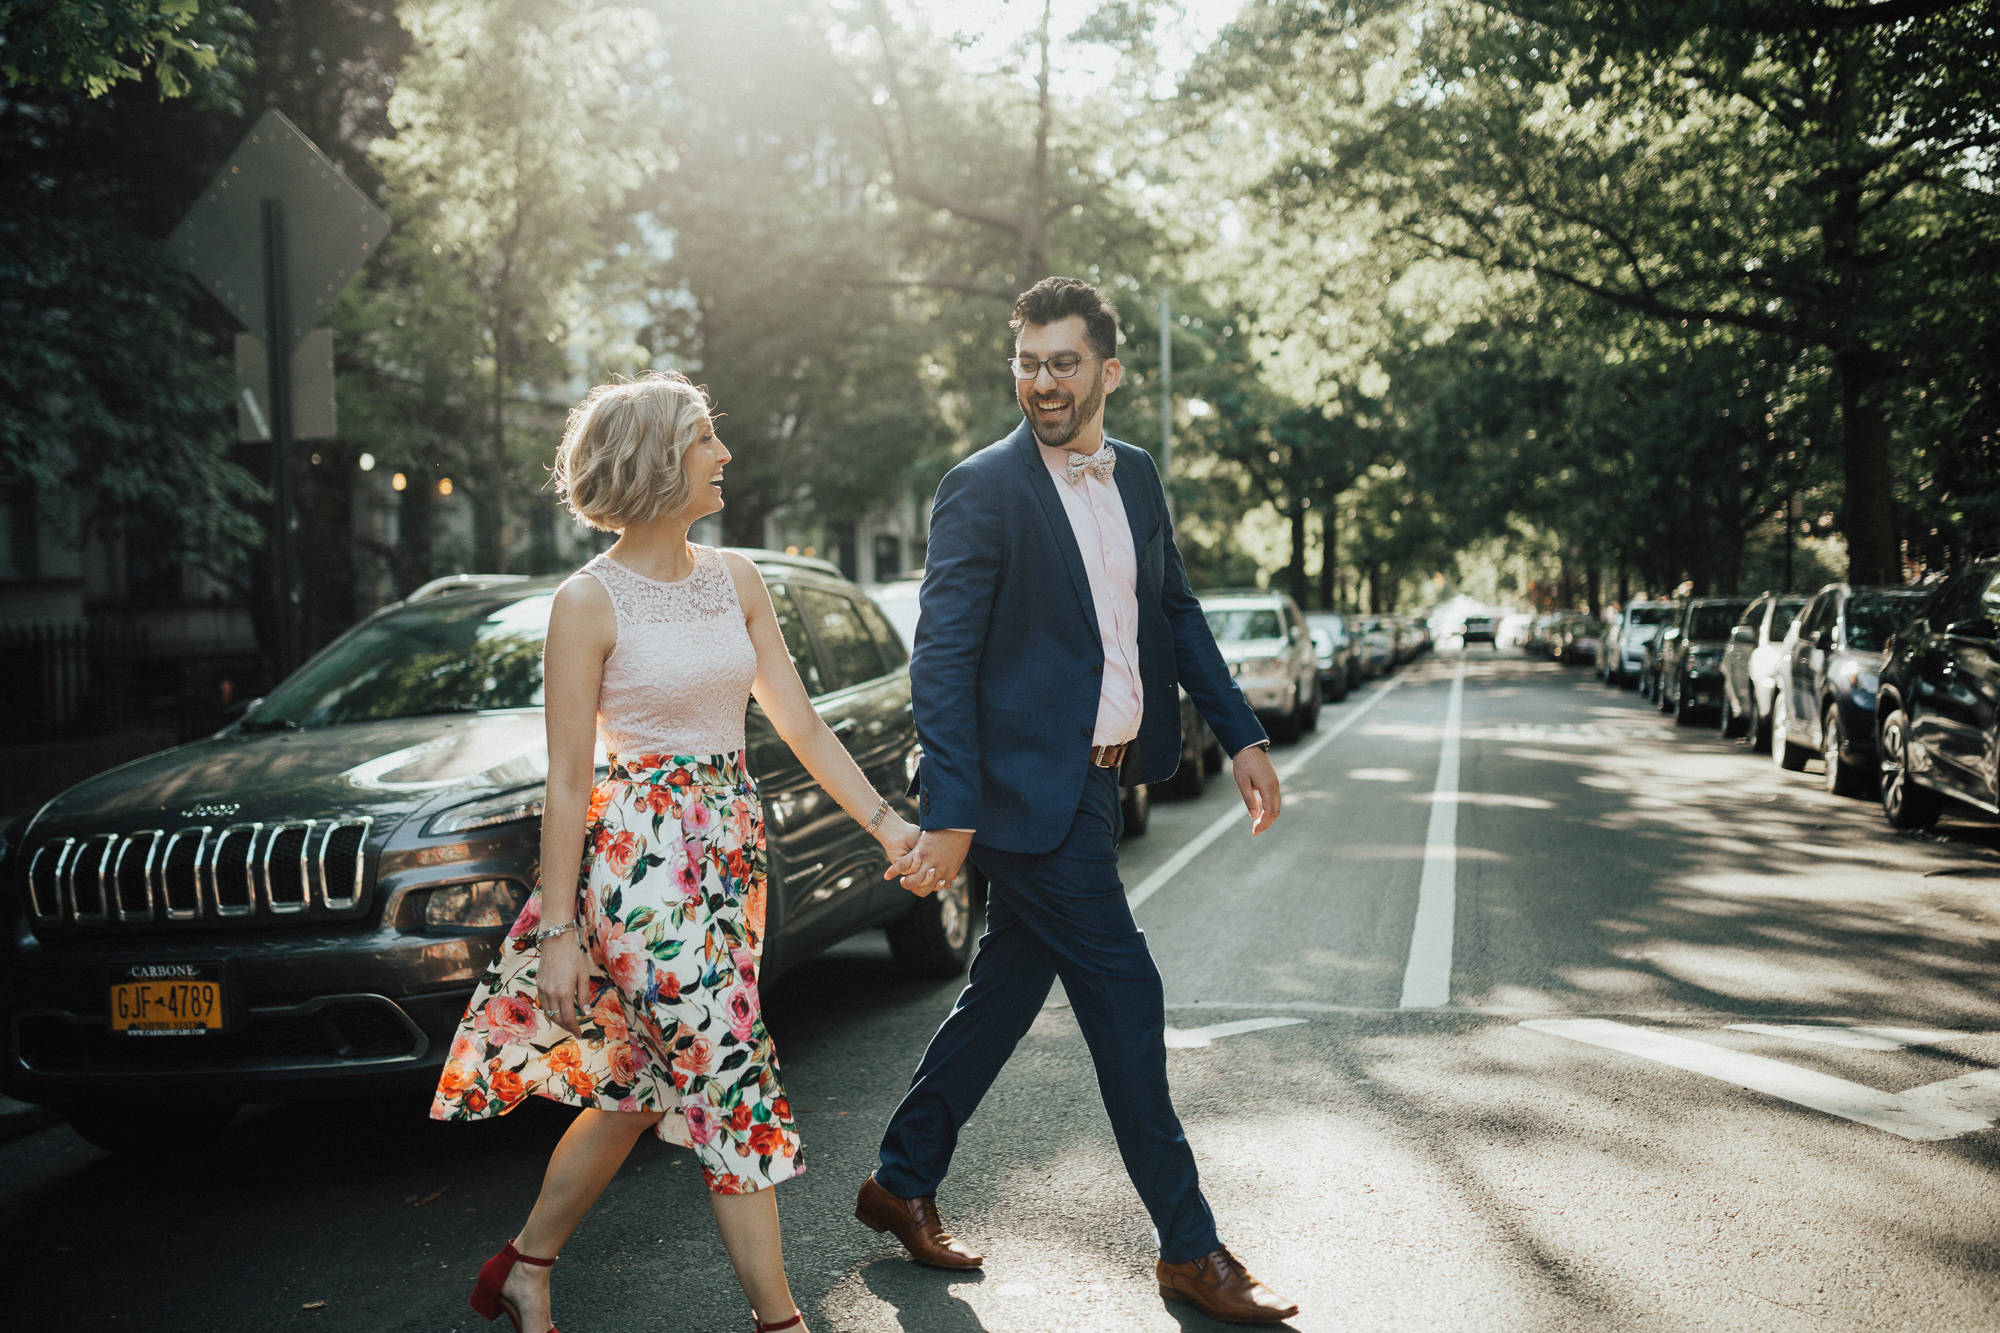 brooklyn_nyc_engagement_photography-12-of-83.jpg